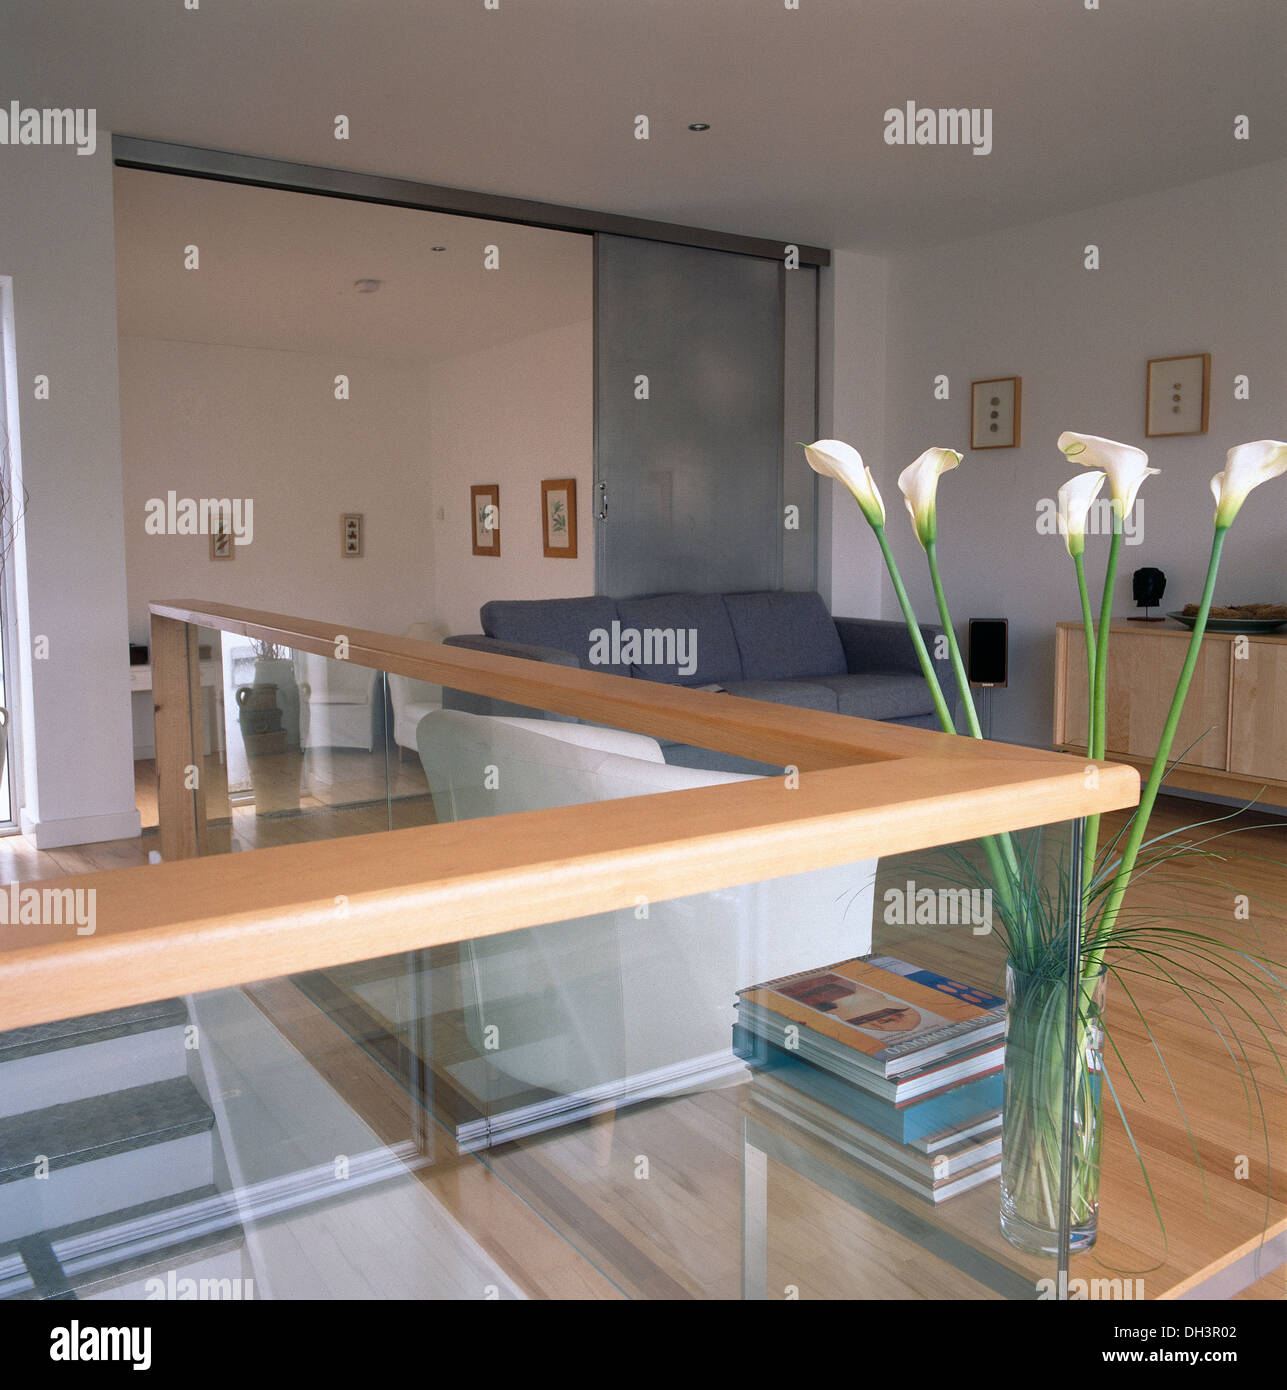 White Arum Lilies On Table Beside Glass Half Wall In Modern Open Plan Living Room